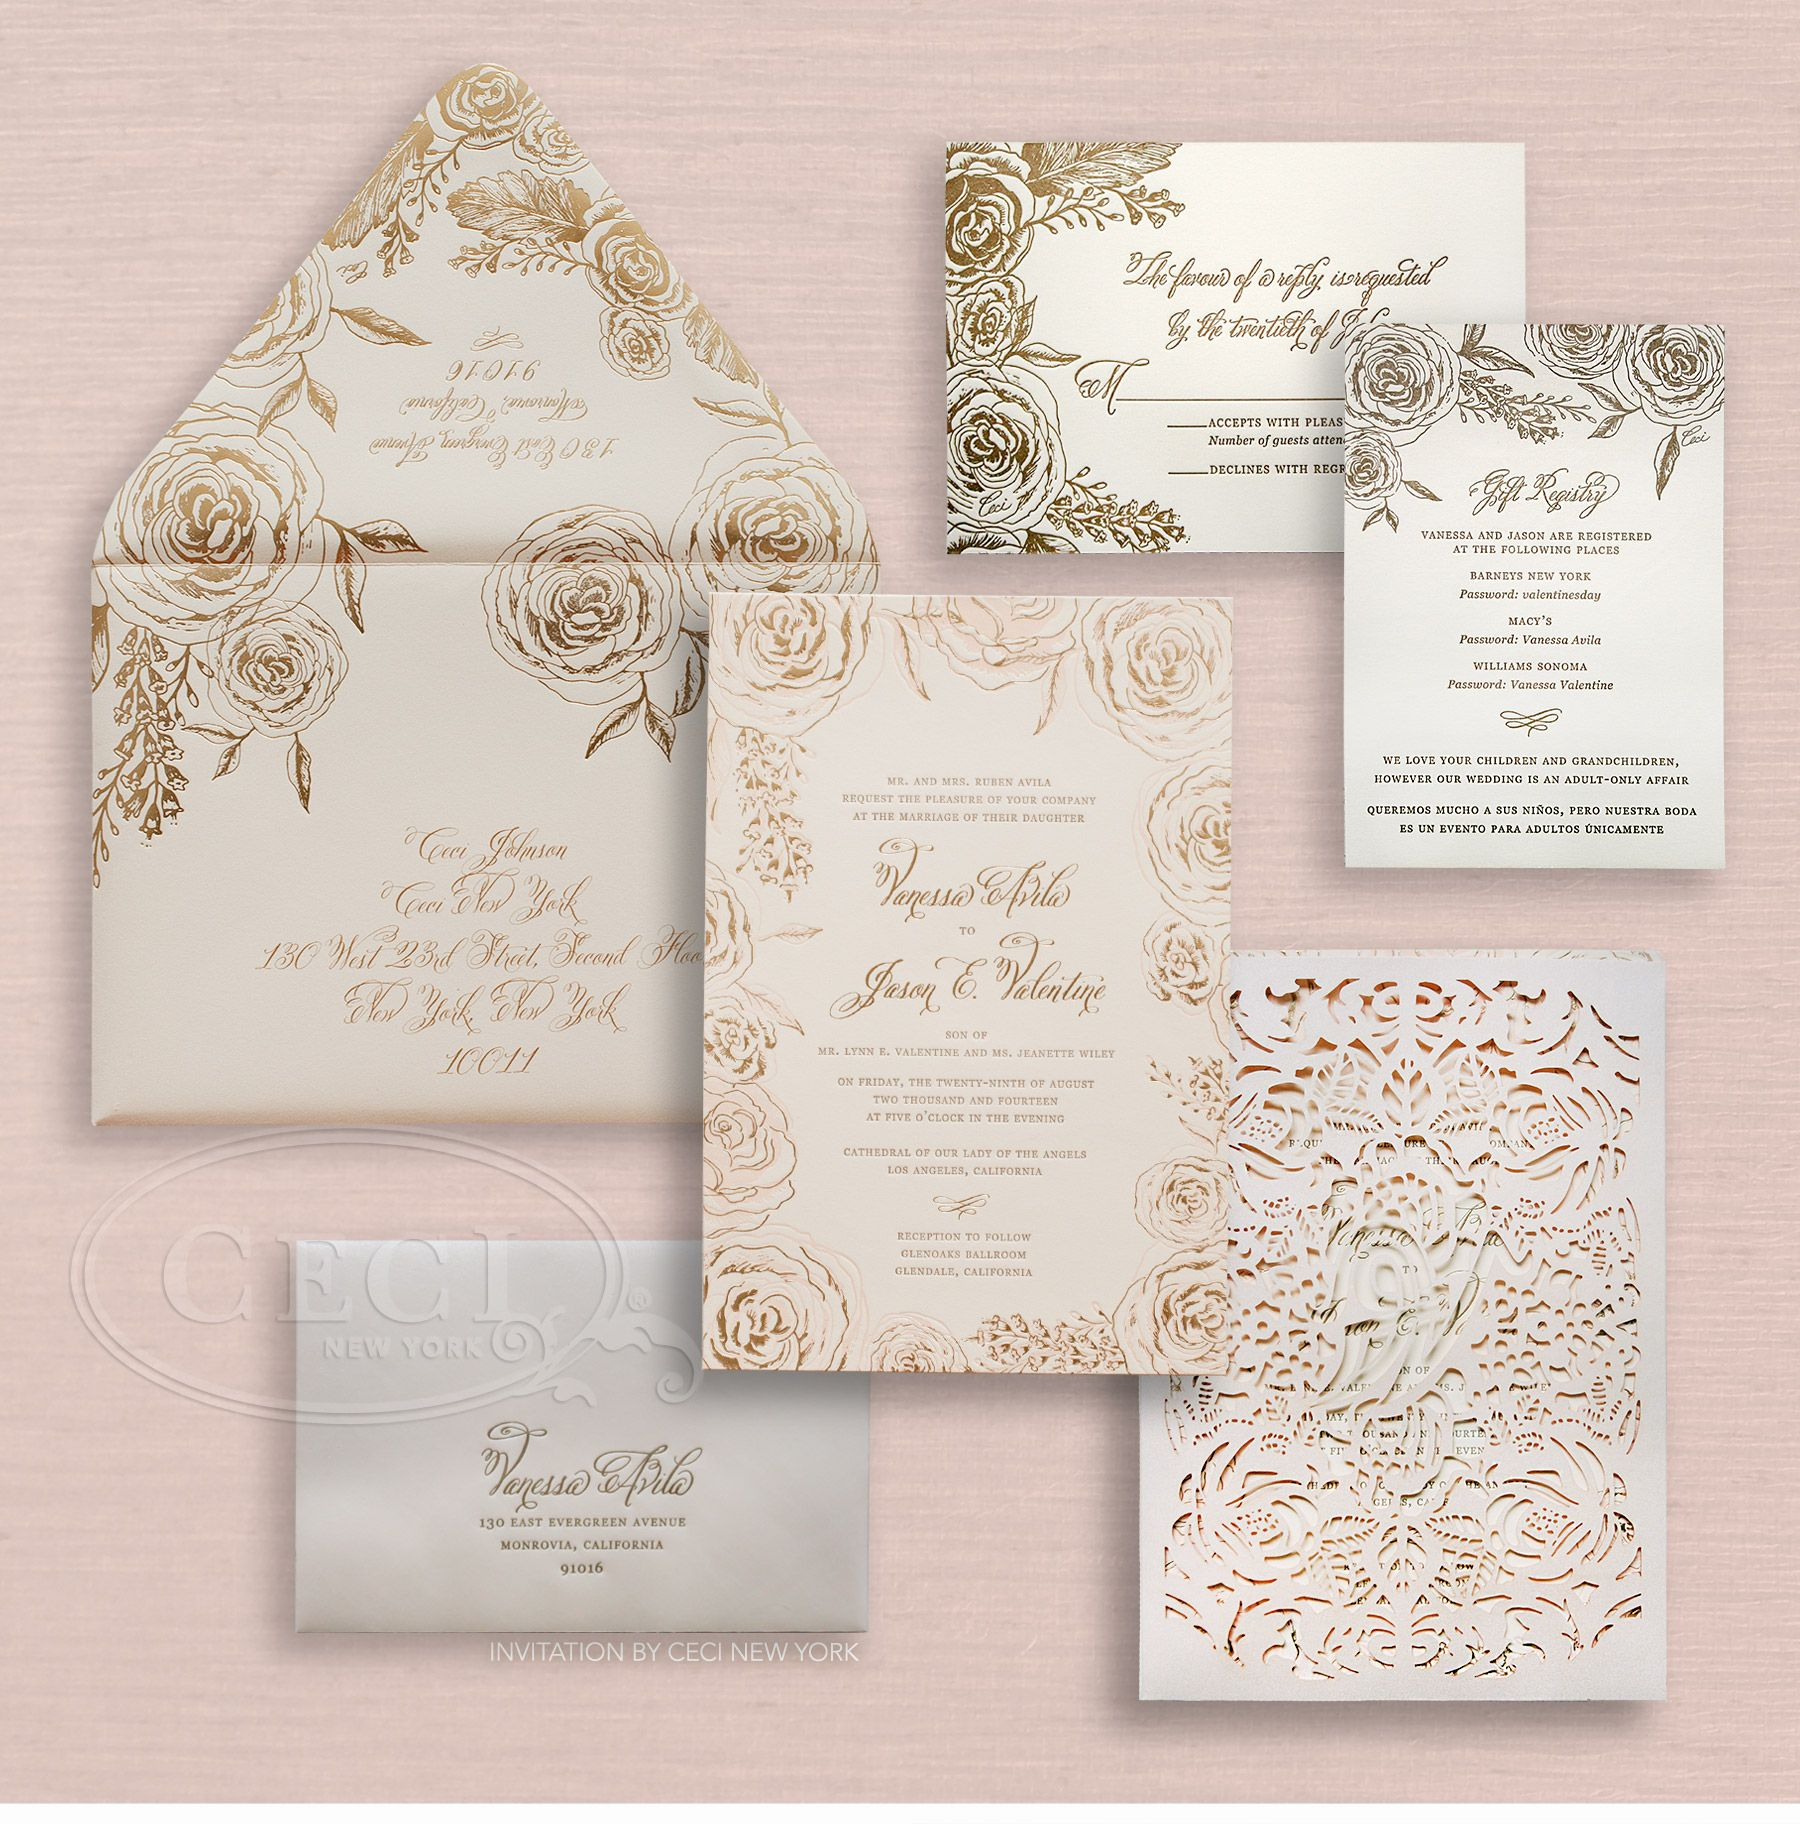 Luxury Wedding Invitations By Ceci New York: Foil-pressed Rose Print On Outer Envelope [Luxury Wedding